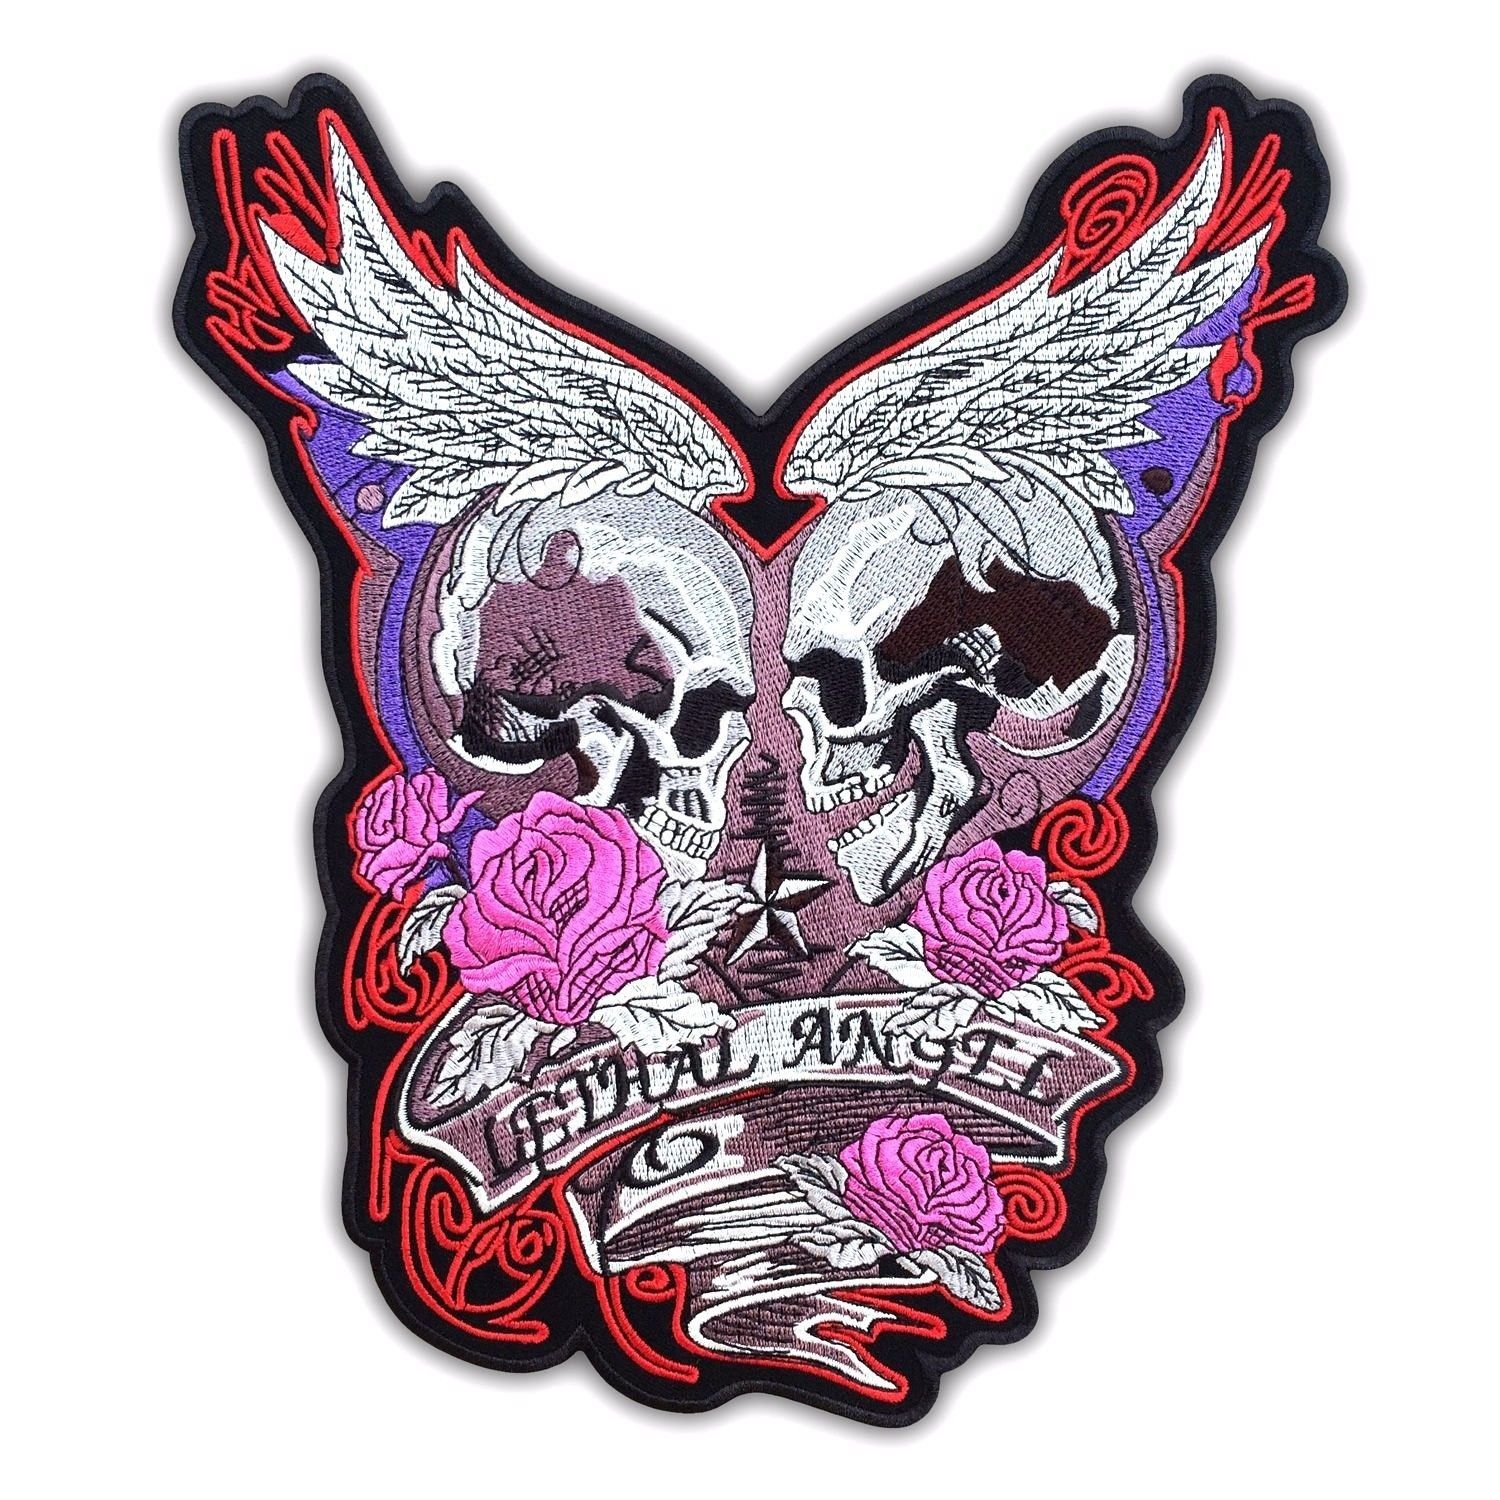 LETHAL ANGEL SKULL WINGS PINK ROSES TATTOO FLASH TANK TOP 10 12 16 S-2XL